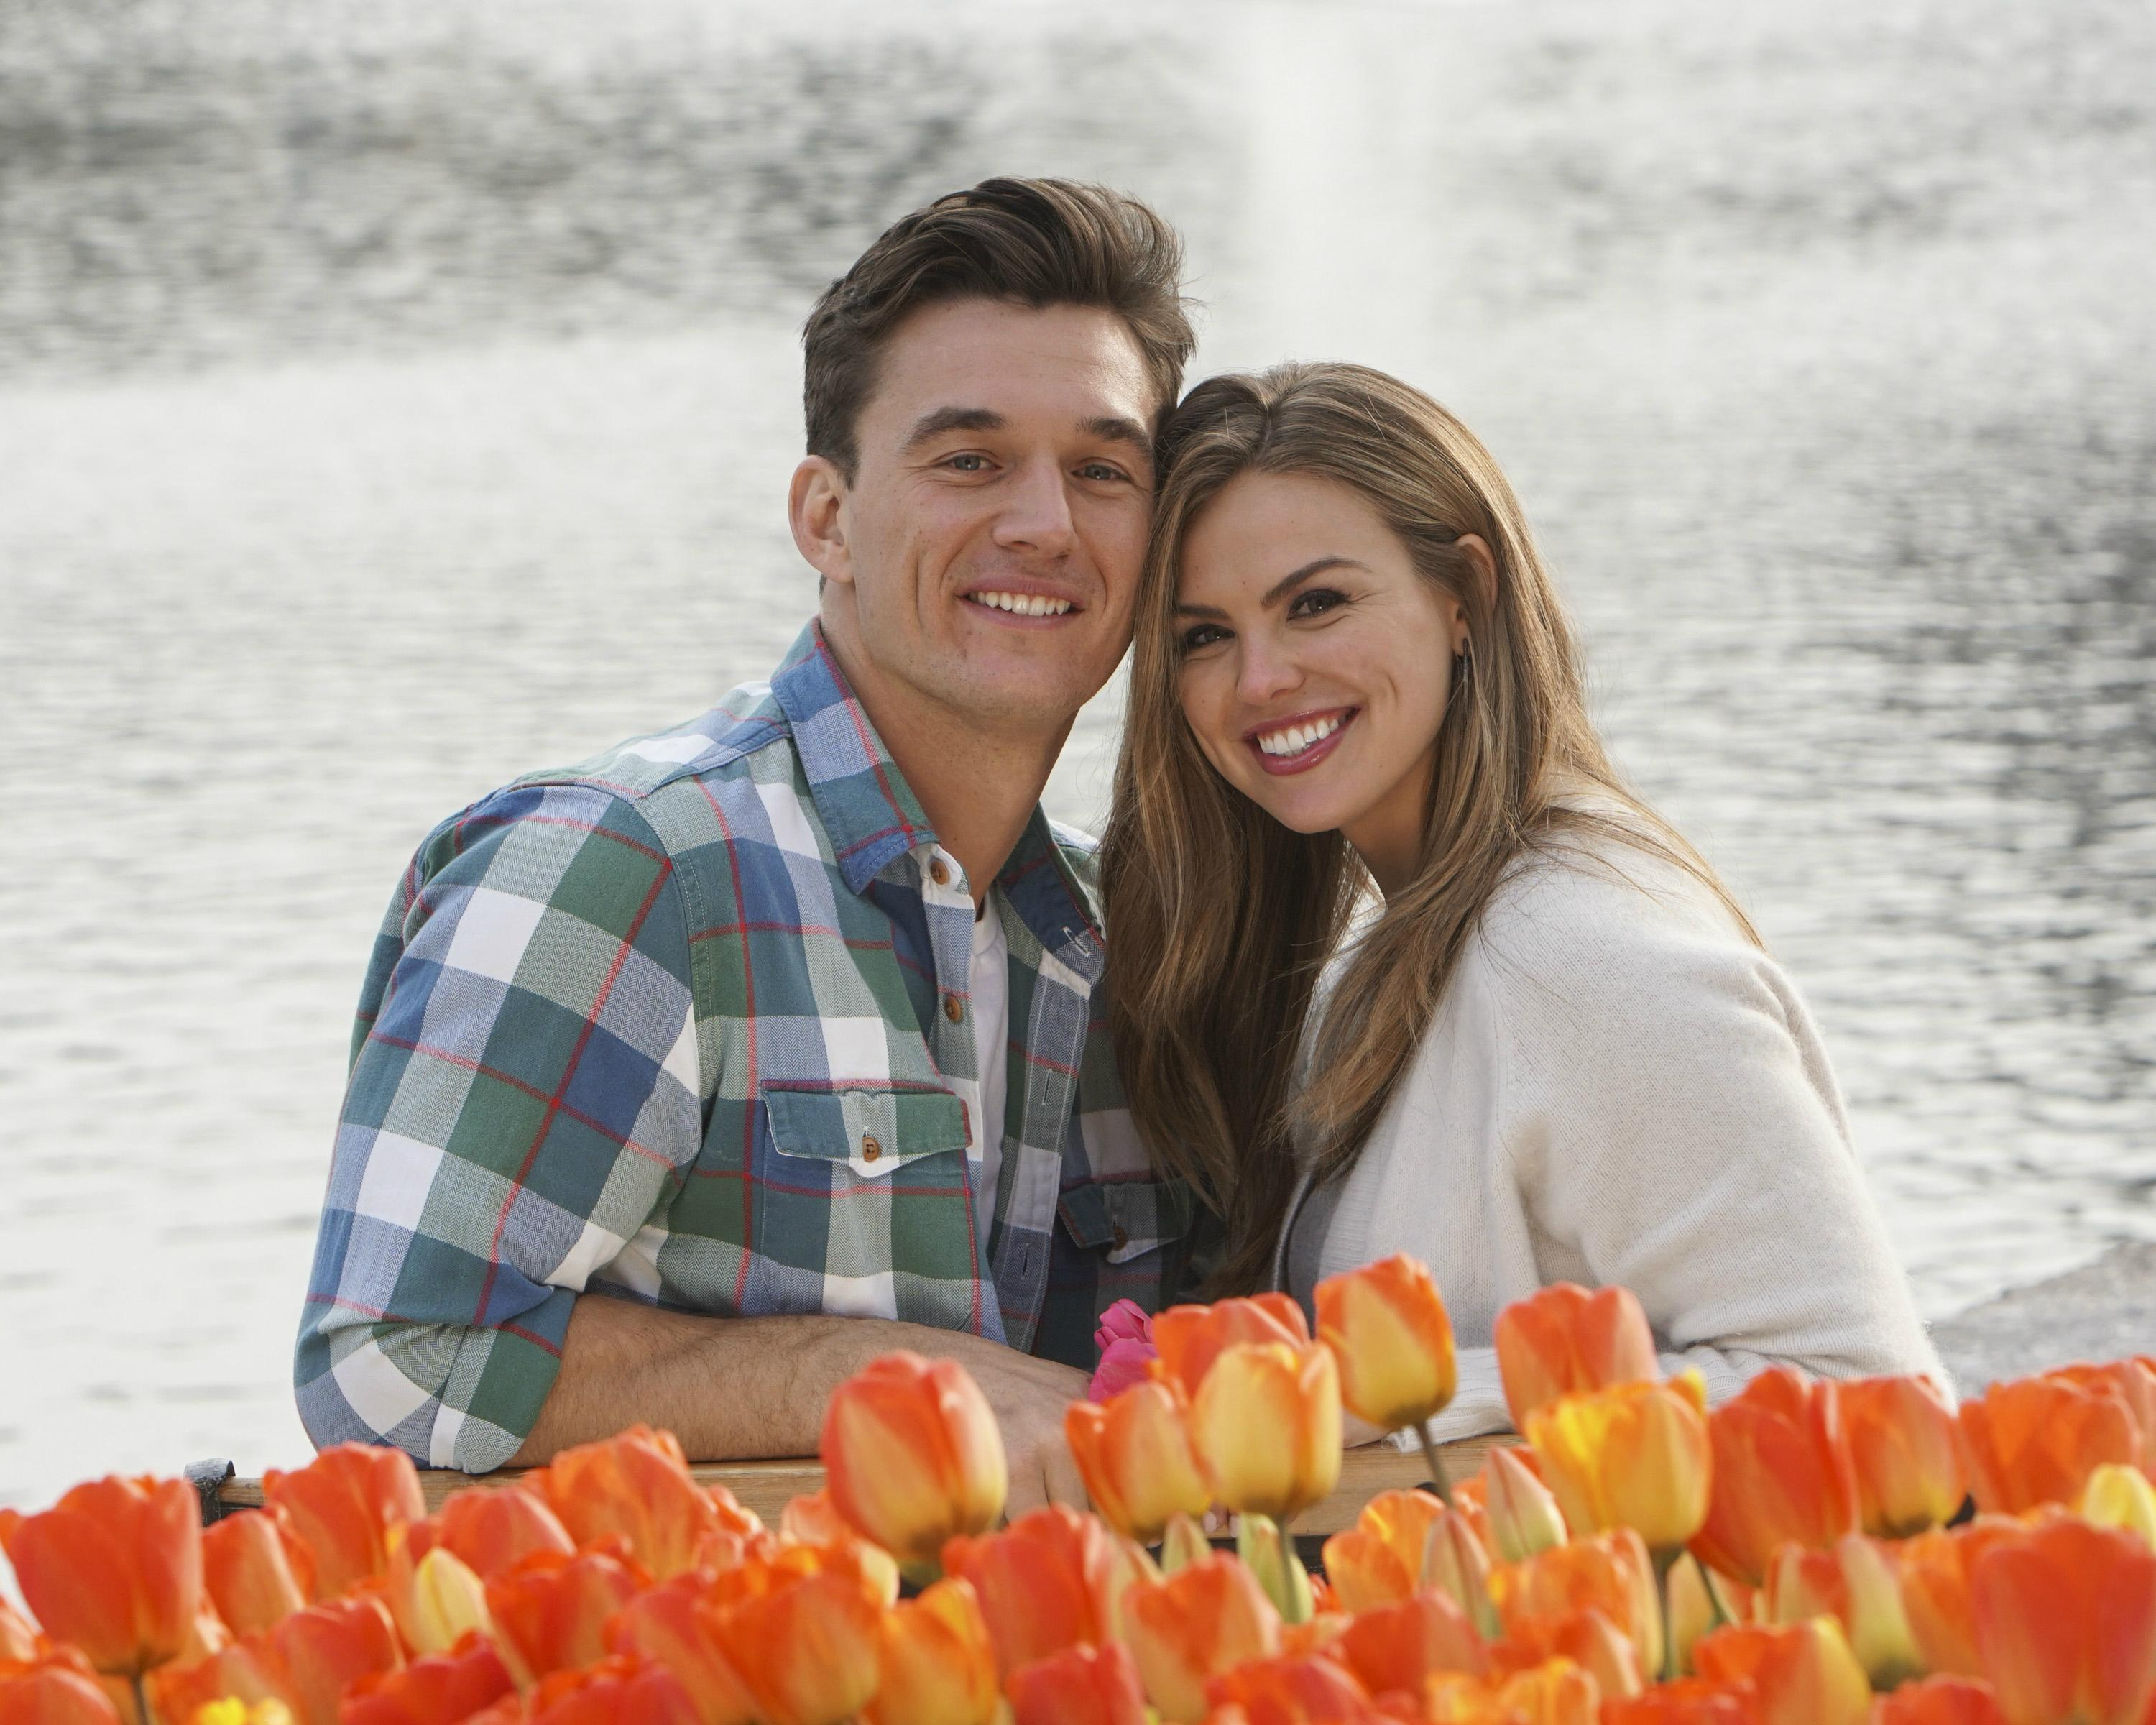 are-hannah-and-tyler-together-bachelorette-finale-1564584249767.jpg